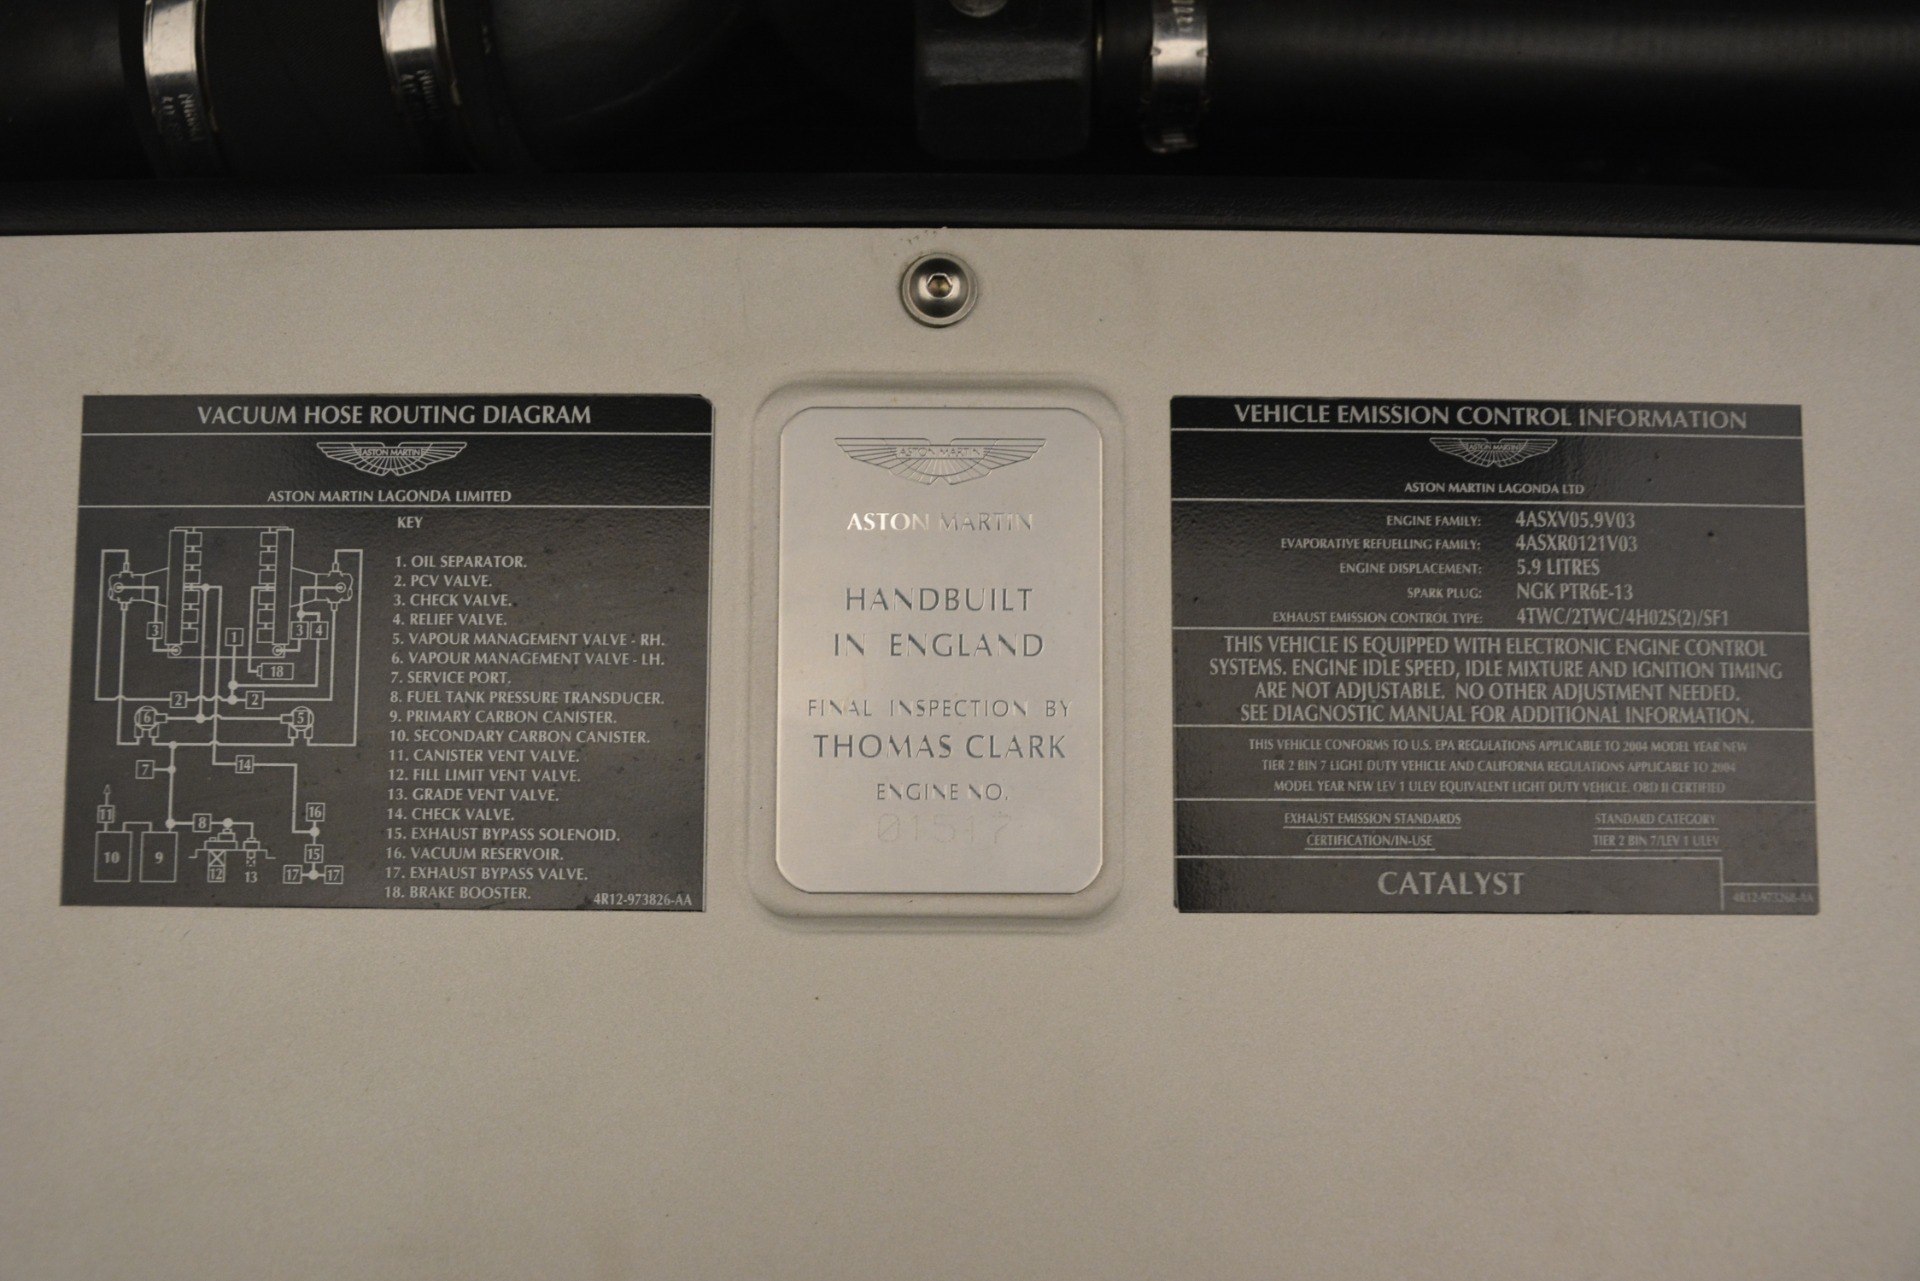 Used 2004 Aston Martin V12 Vanquish  For Sale In Greenwich, CT 3160_p18